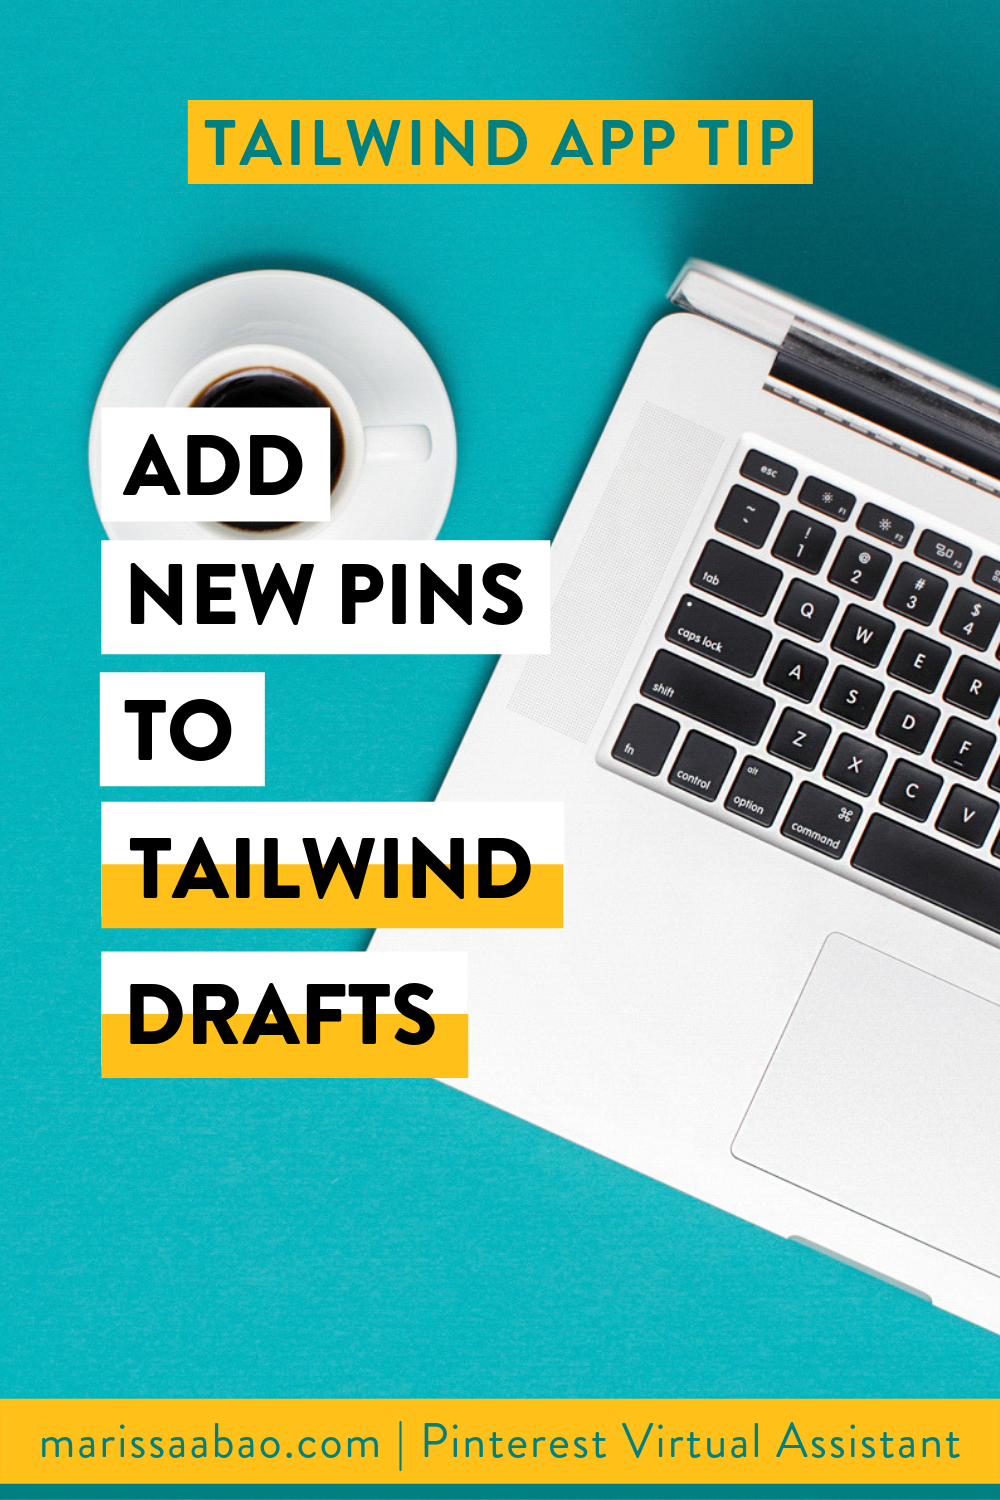 How to Master Scheduling Pinterest Pins Using Tailwind App